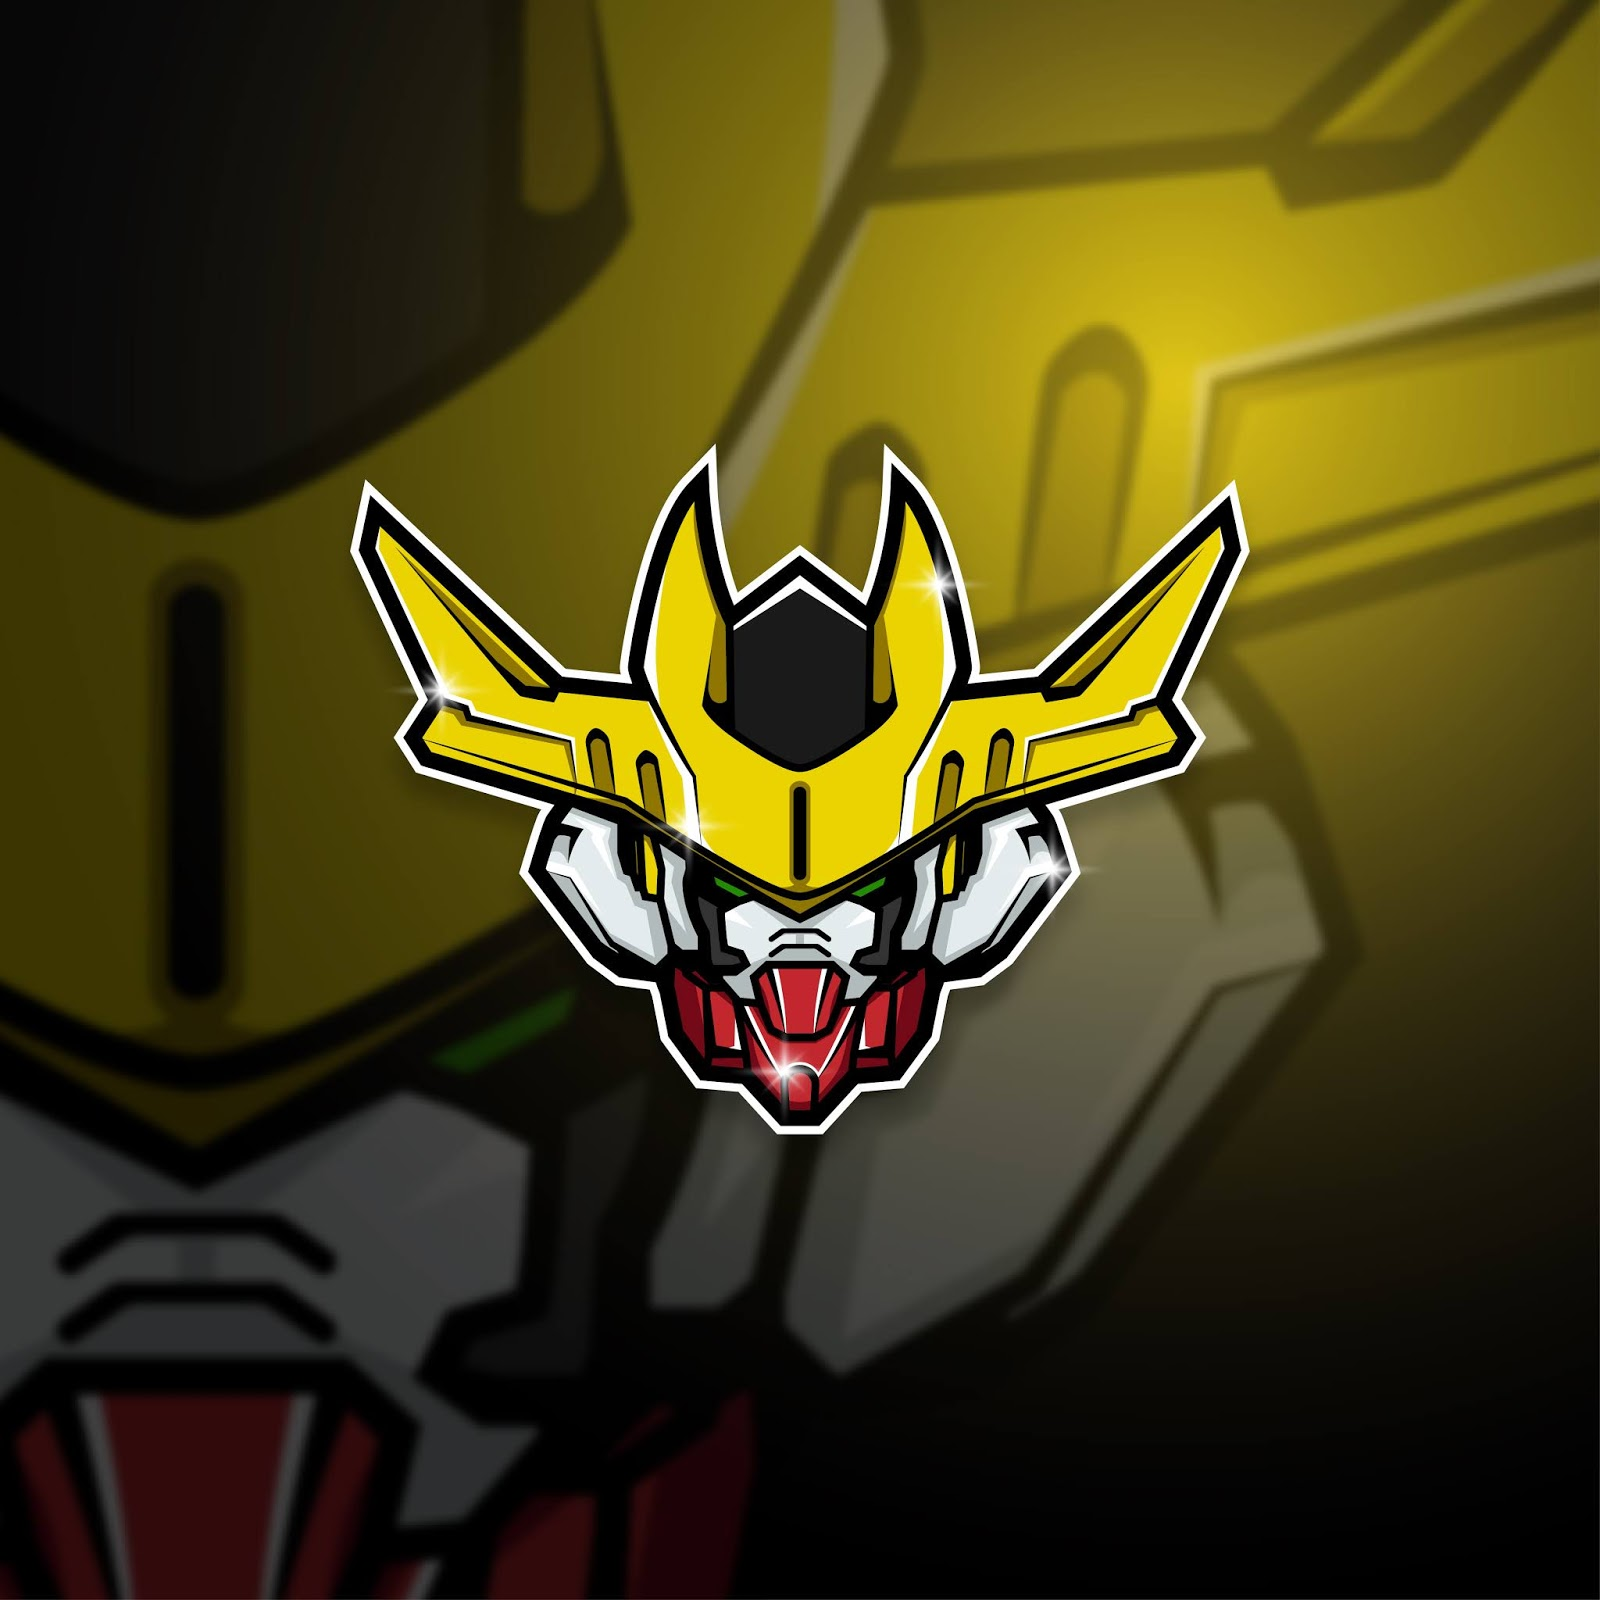 Esports Mascot Logo Team Barbatos Squad Free Download Vector CDR, AI, EPS and PNG Formats